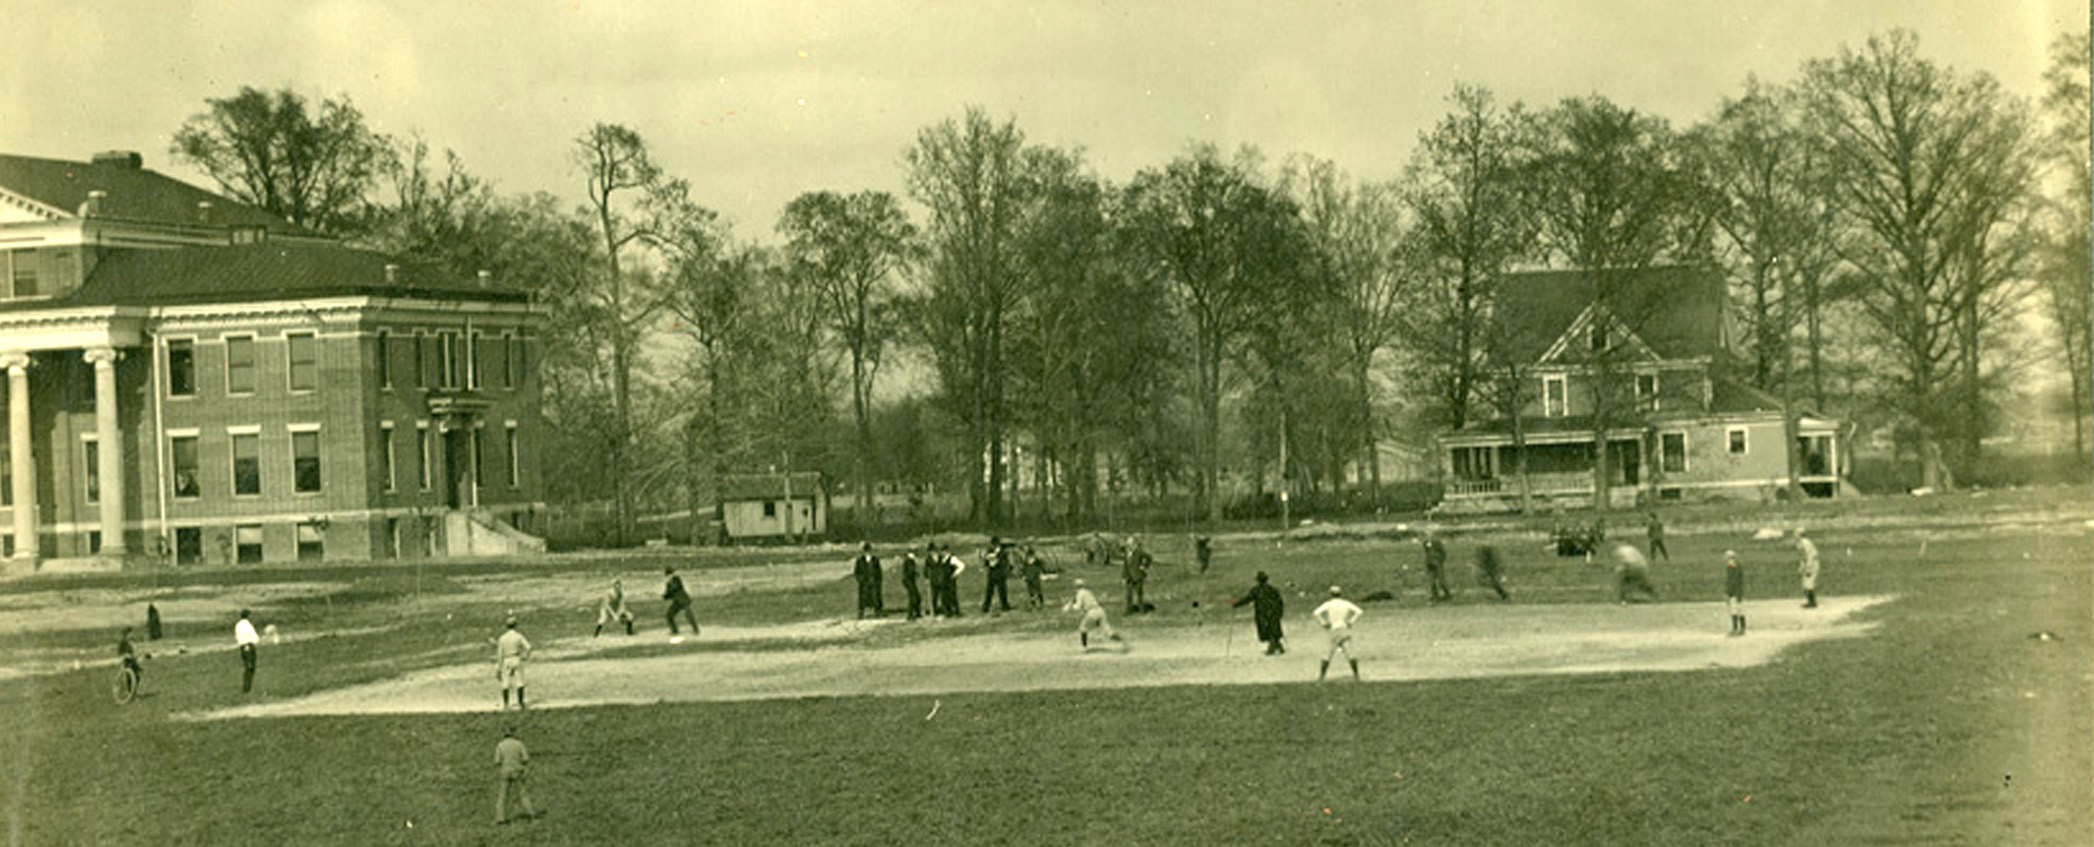 The Greyhounds baseball team practices in a field adjacent to Good Hall (on the left) in this early 20th century photograph.